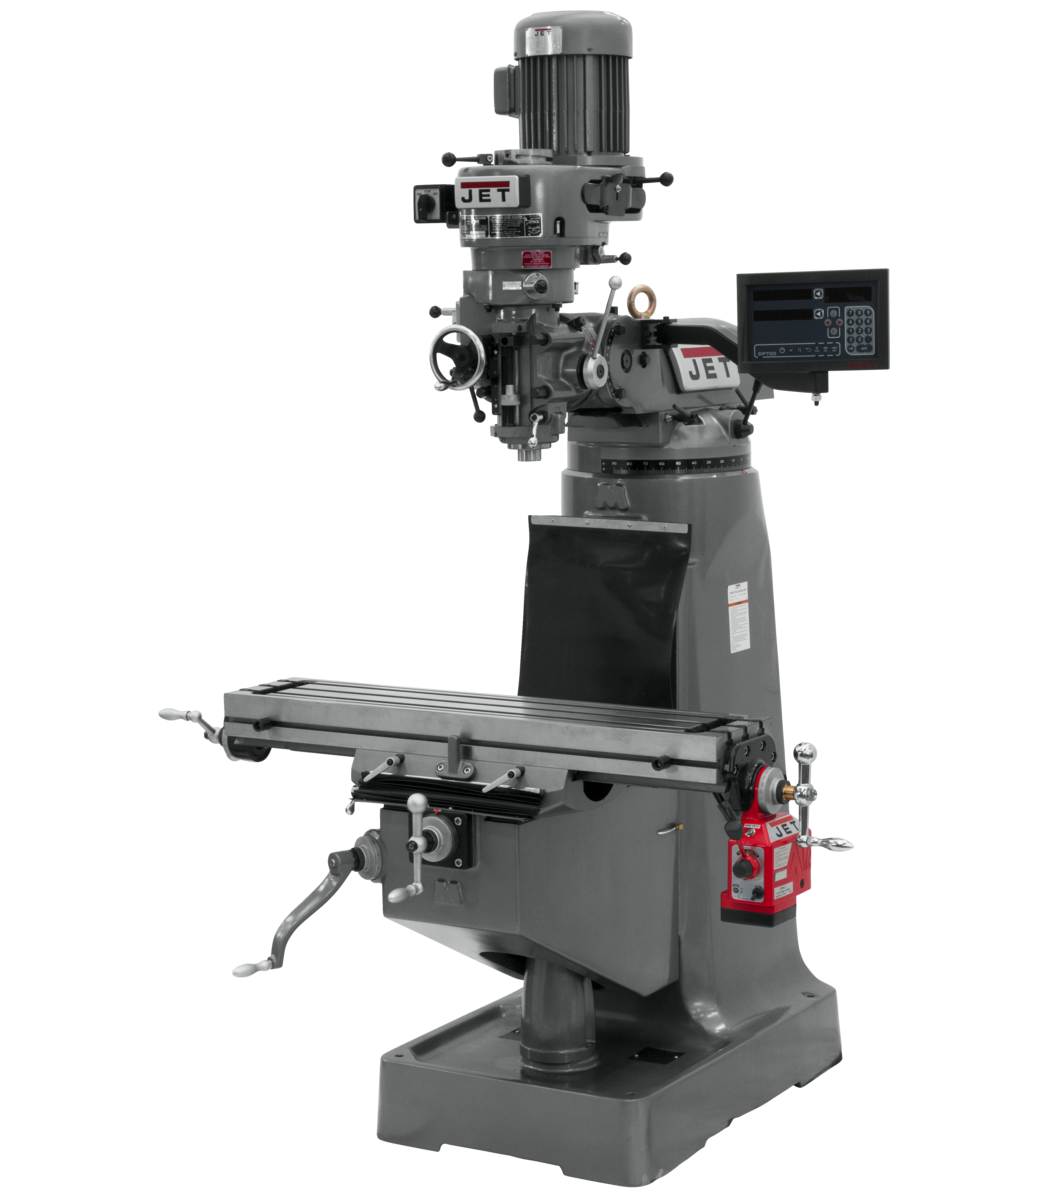 JTM-1 Mill With 3-Axis Newall DP700 DRO (Quill) With X-Axis Powerfeed